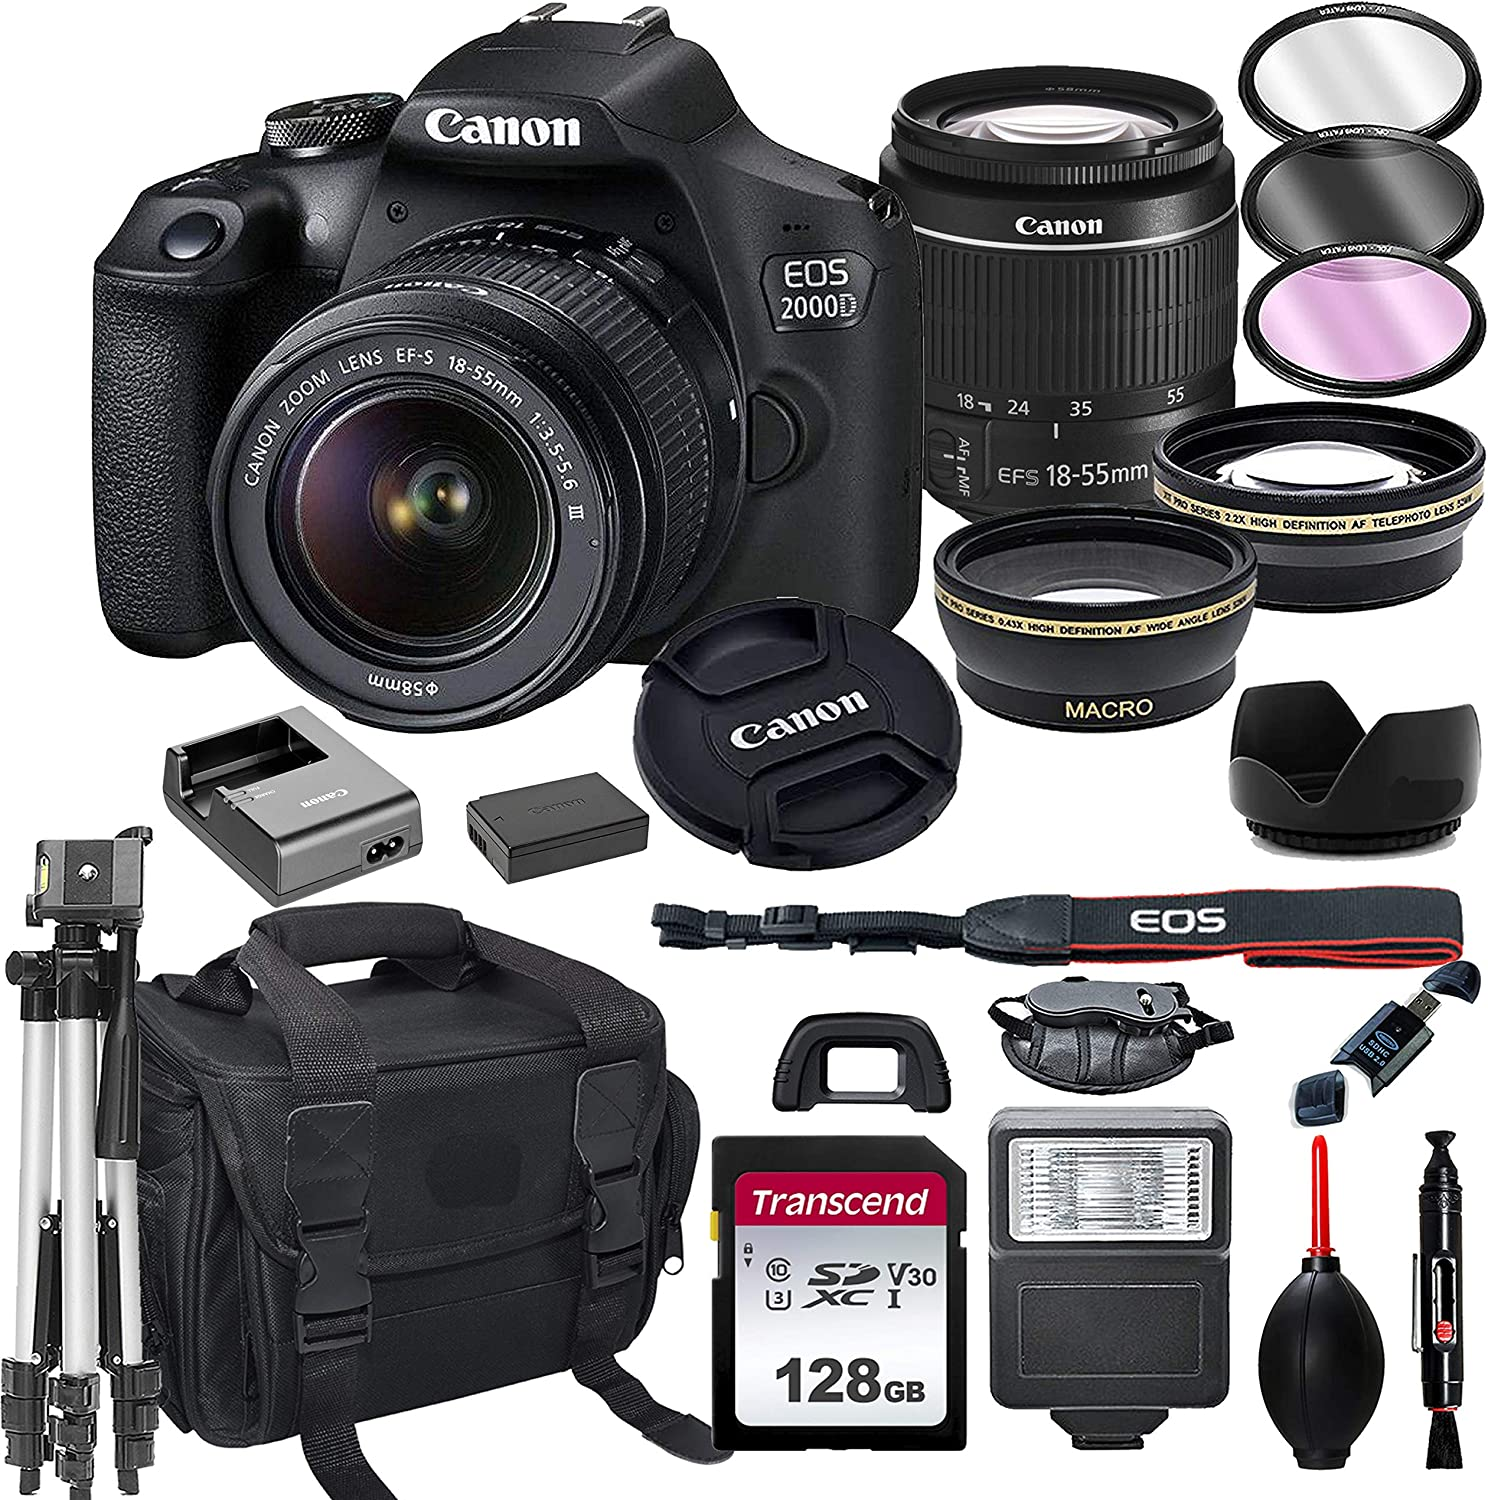 Canon EOS 2000D DSLR Camera with 18-55mm f/3.5-5.6 Zoom Lens + 128GB Card, Tripod, Flash, and More (20pc Bundle)